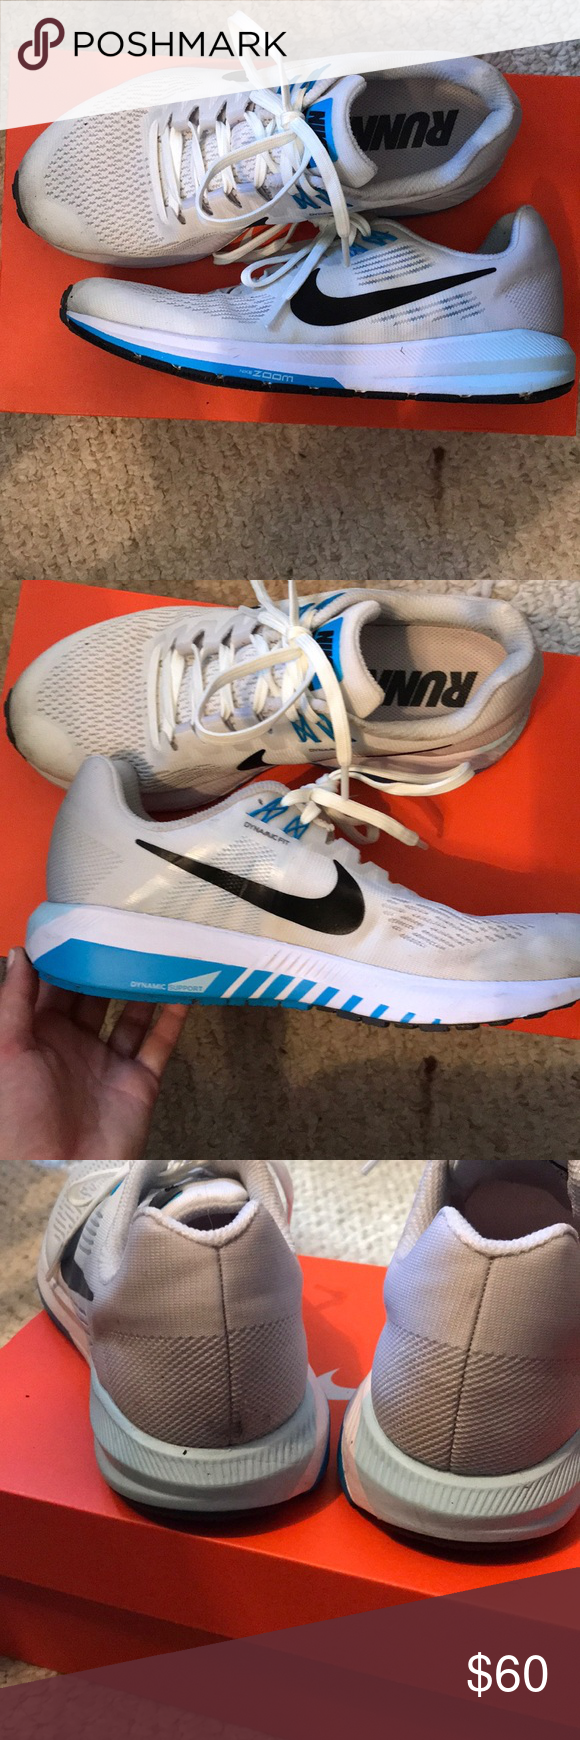 pretty nice 1a54b 98870 ... Nike Air Zoom Structure 21 shoe Greywhitelight blue. Worn low price  cef01 a5ac5 . ...